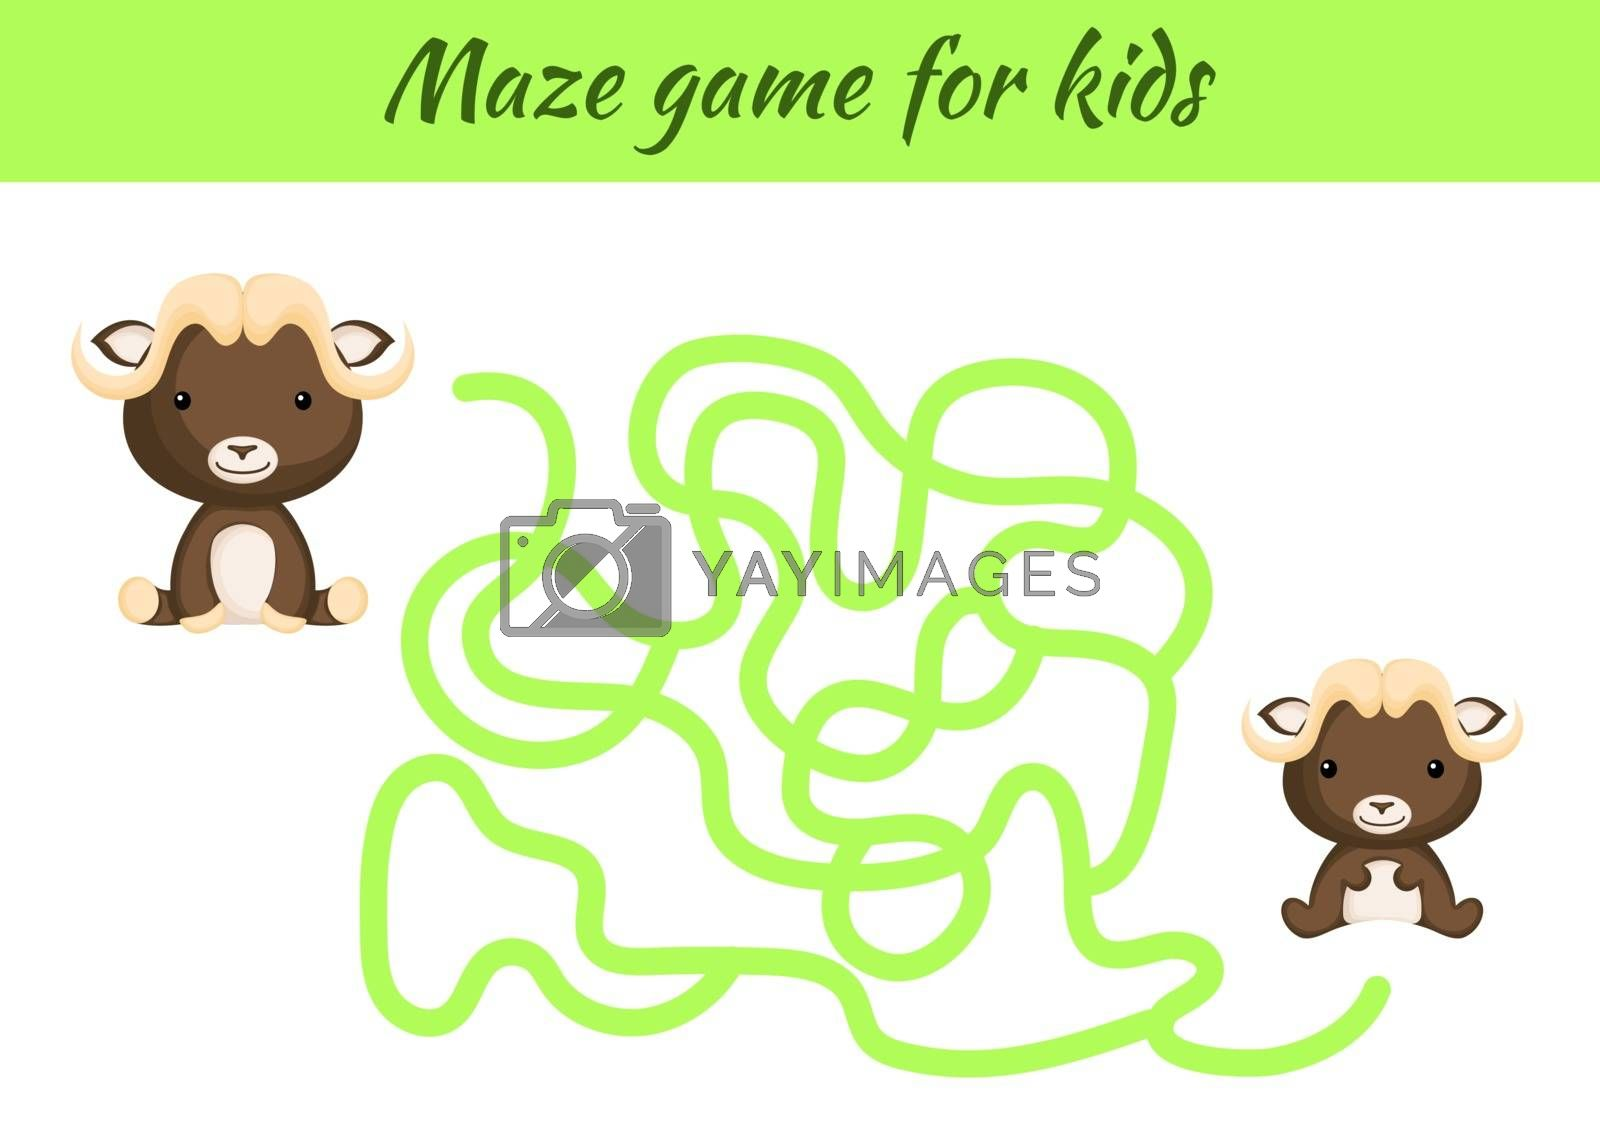 Funny maze or labyrinth game for kids. Help mother find path to baby. Education developing worksheet. Activity page. Cartoon musk ox characters. Riddle for preschool. Color vector stock illustration.